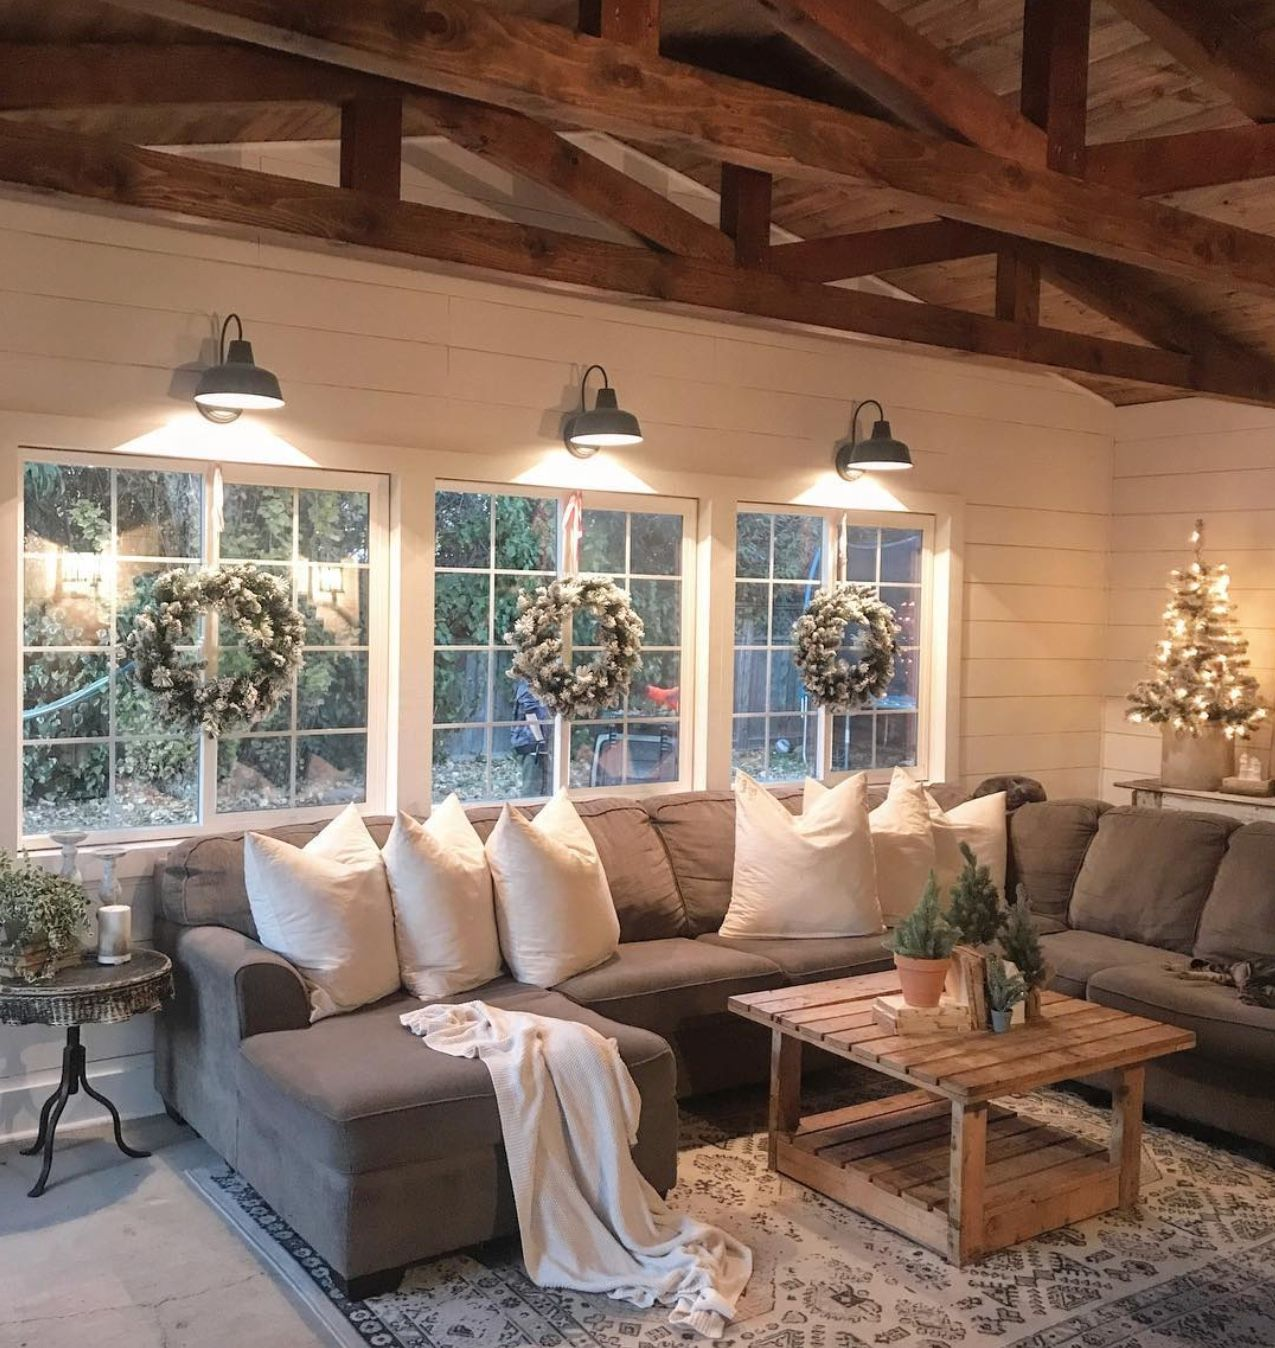 I Love This Simple Elegant Rustic Love The Down Lights And